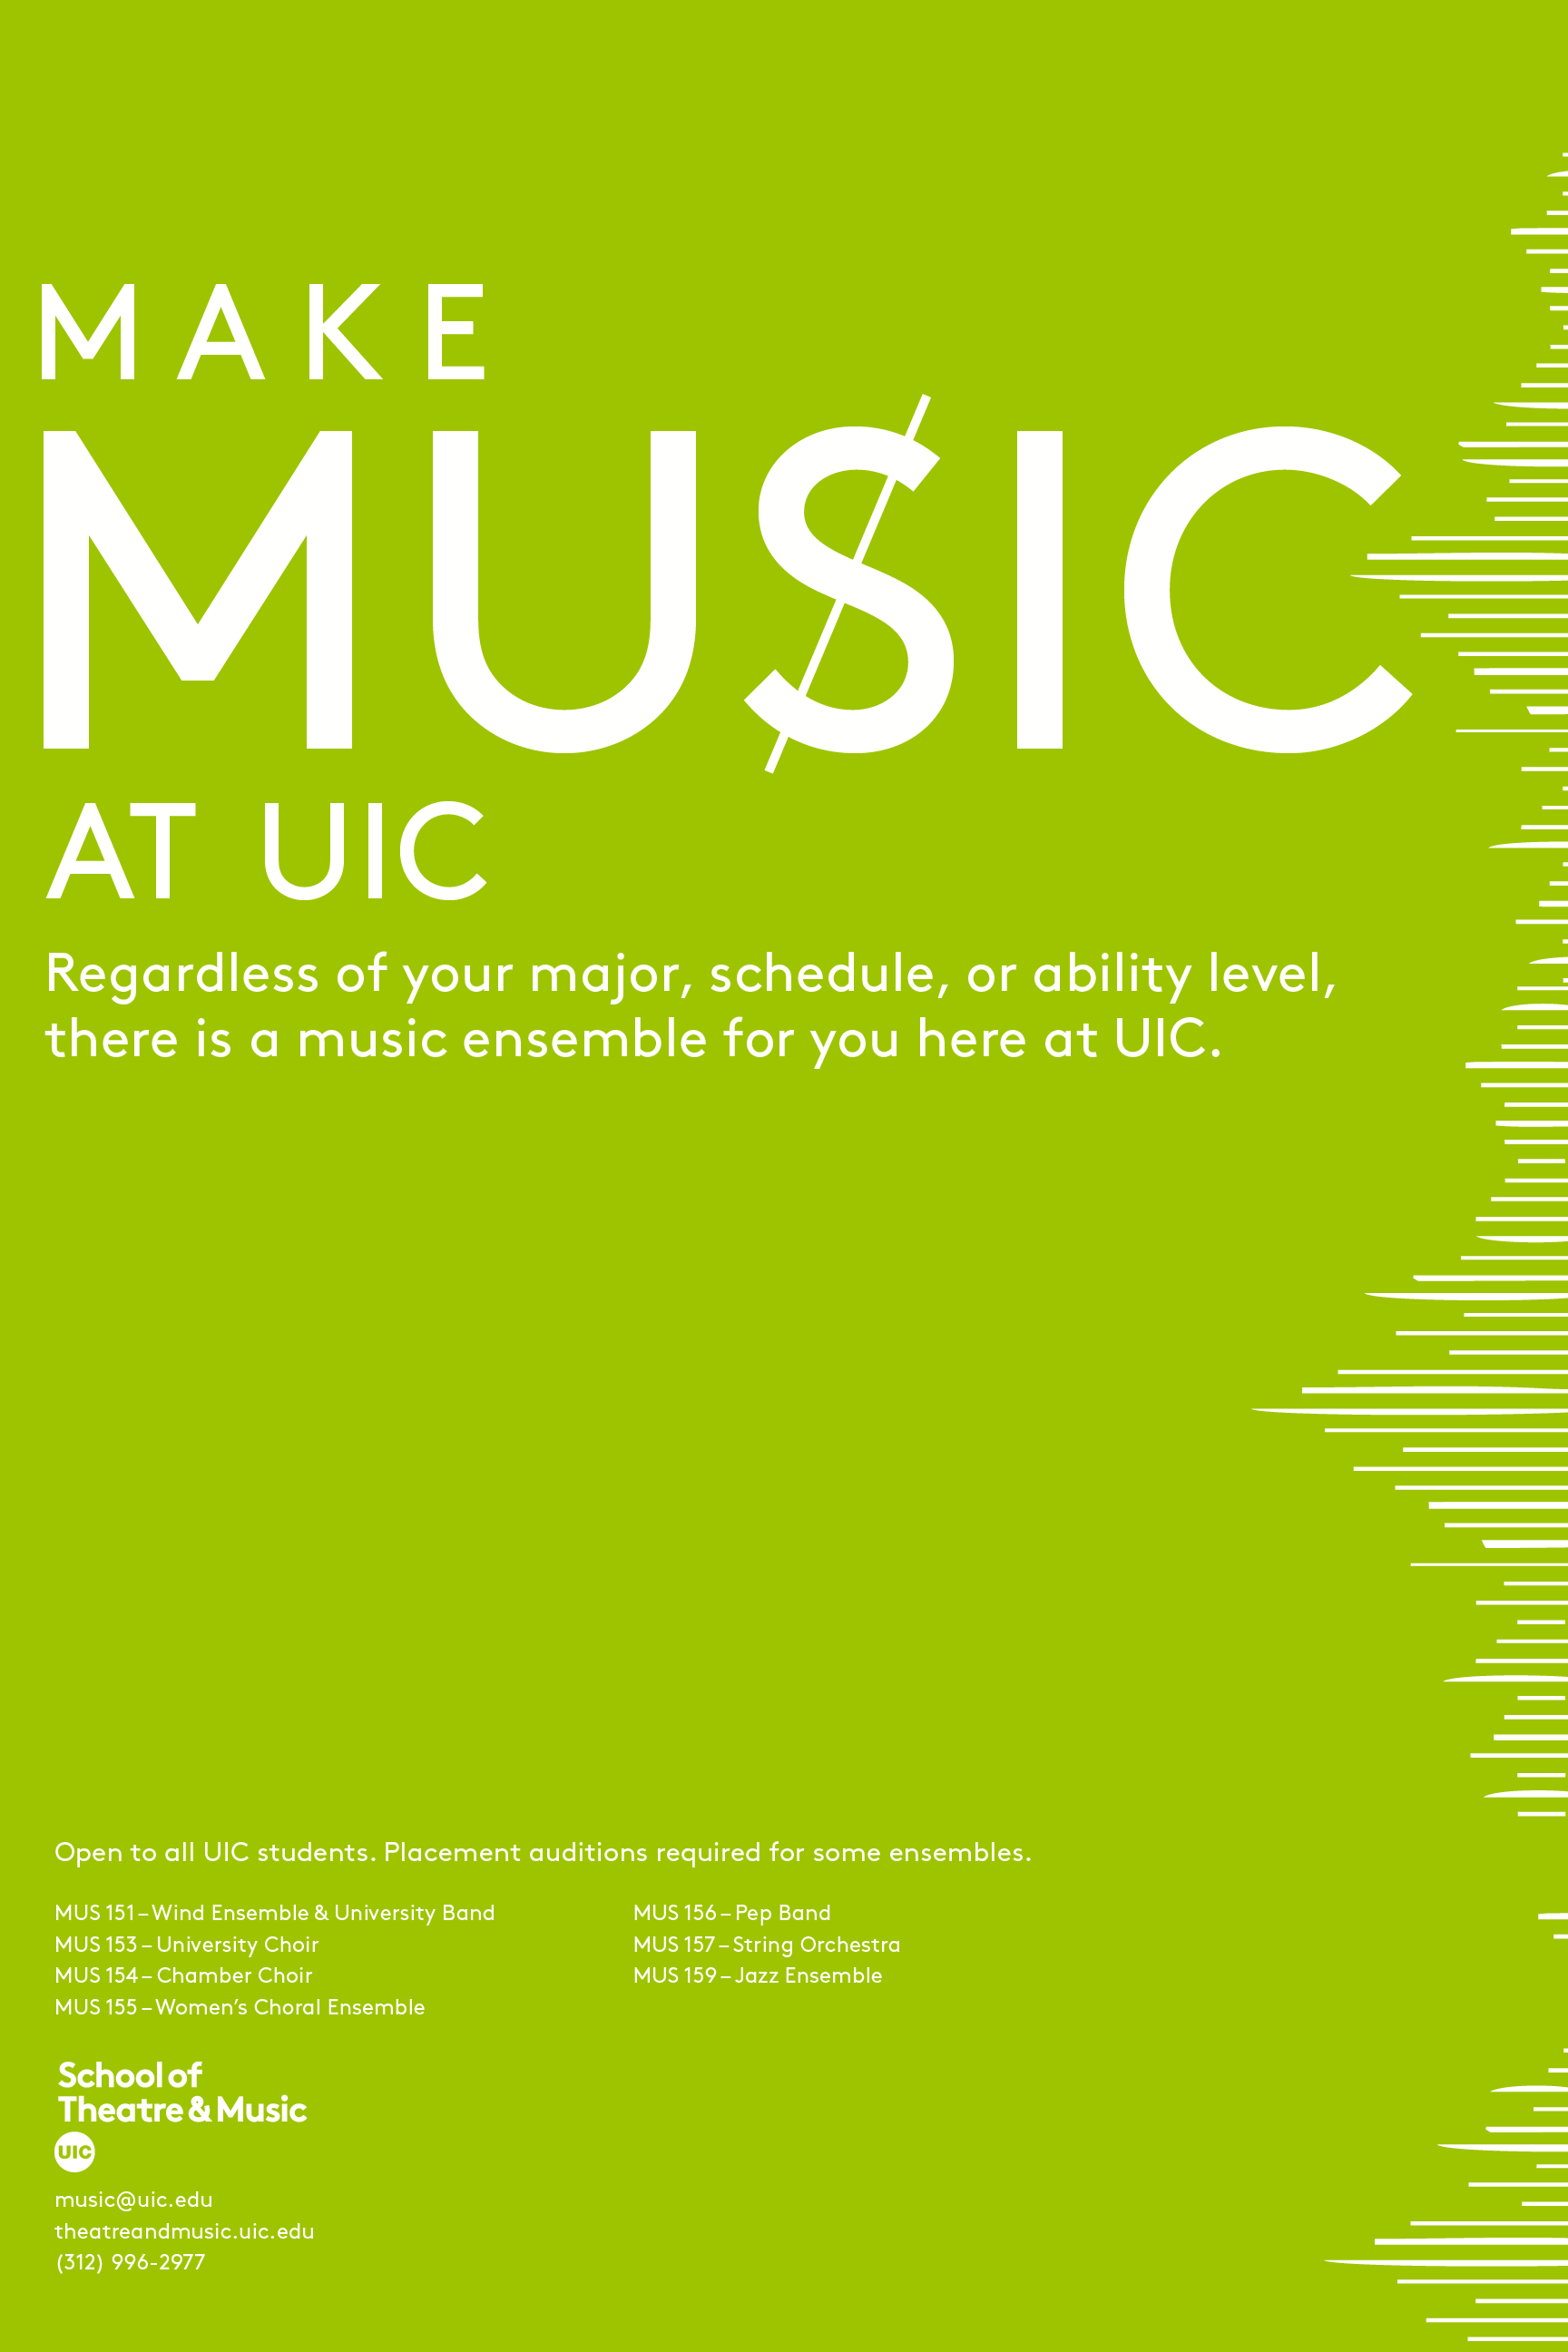 make music poster series sarah sommers design